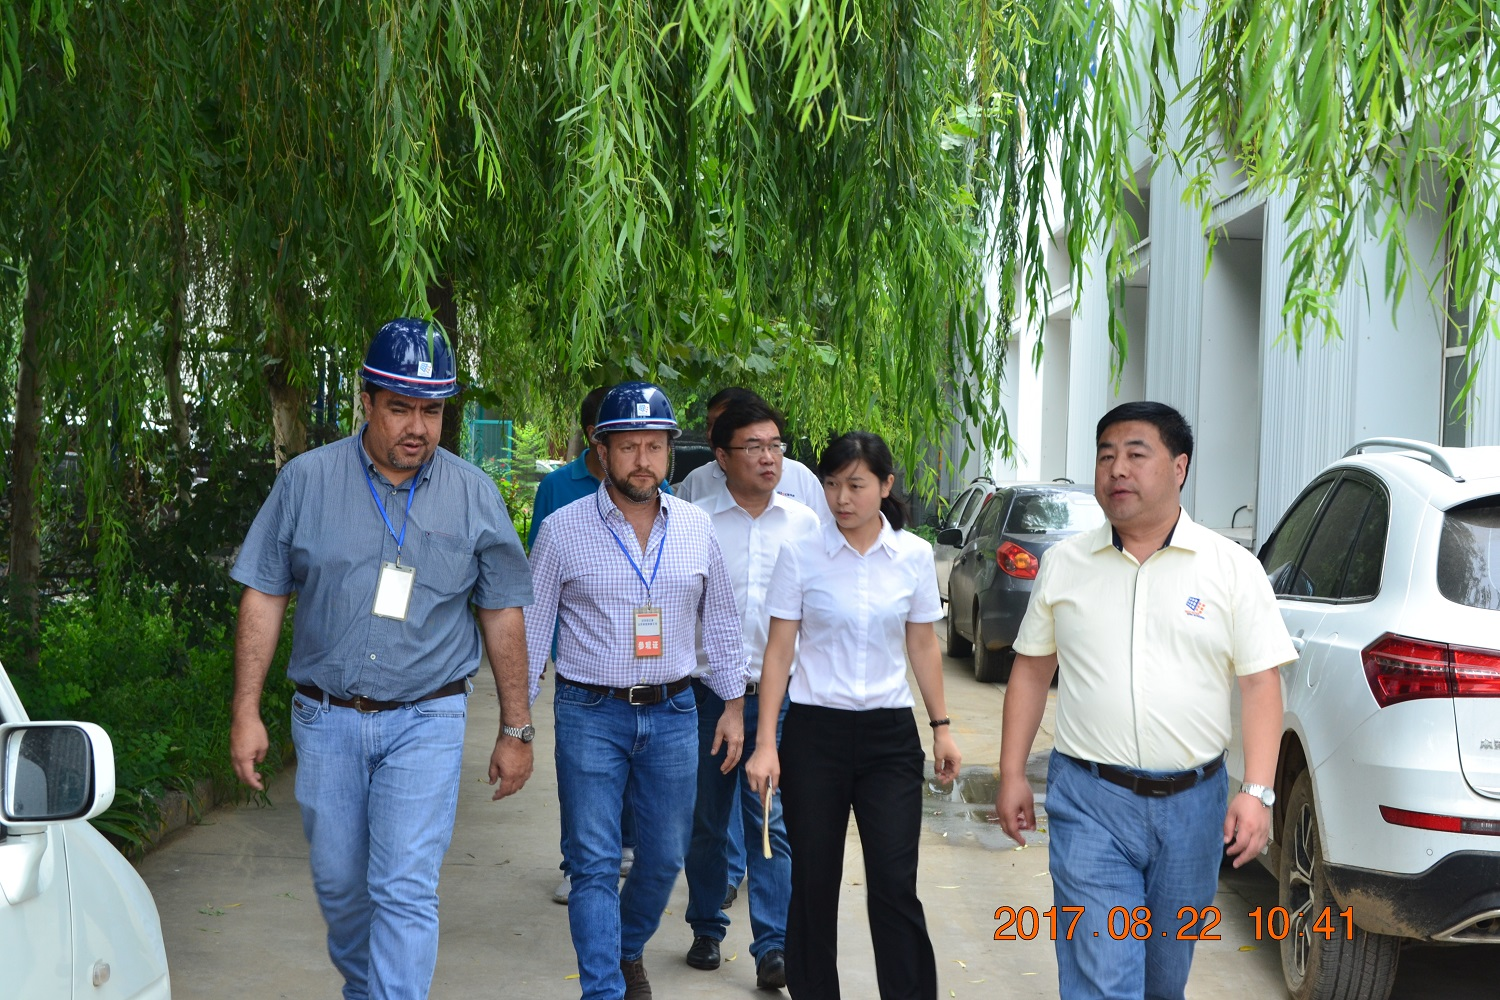 Warmly Welcome Mr.Jaime Davila G. and Mr.Miguel Zevallos to visit our factory.